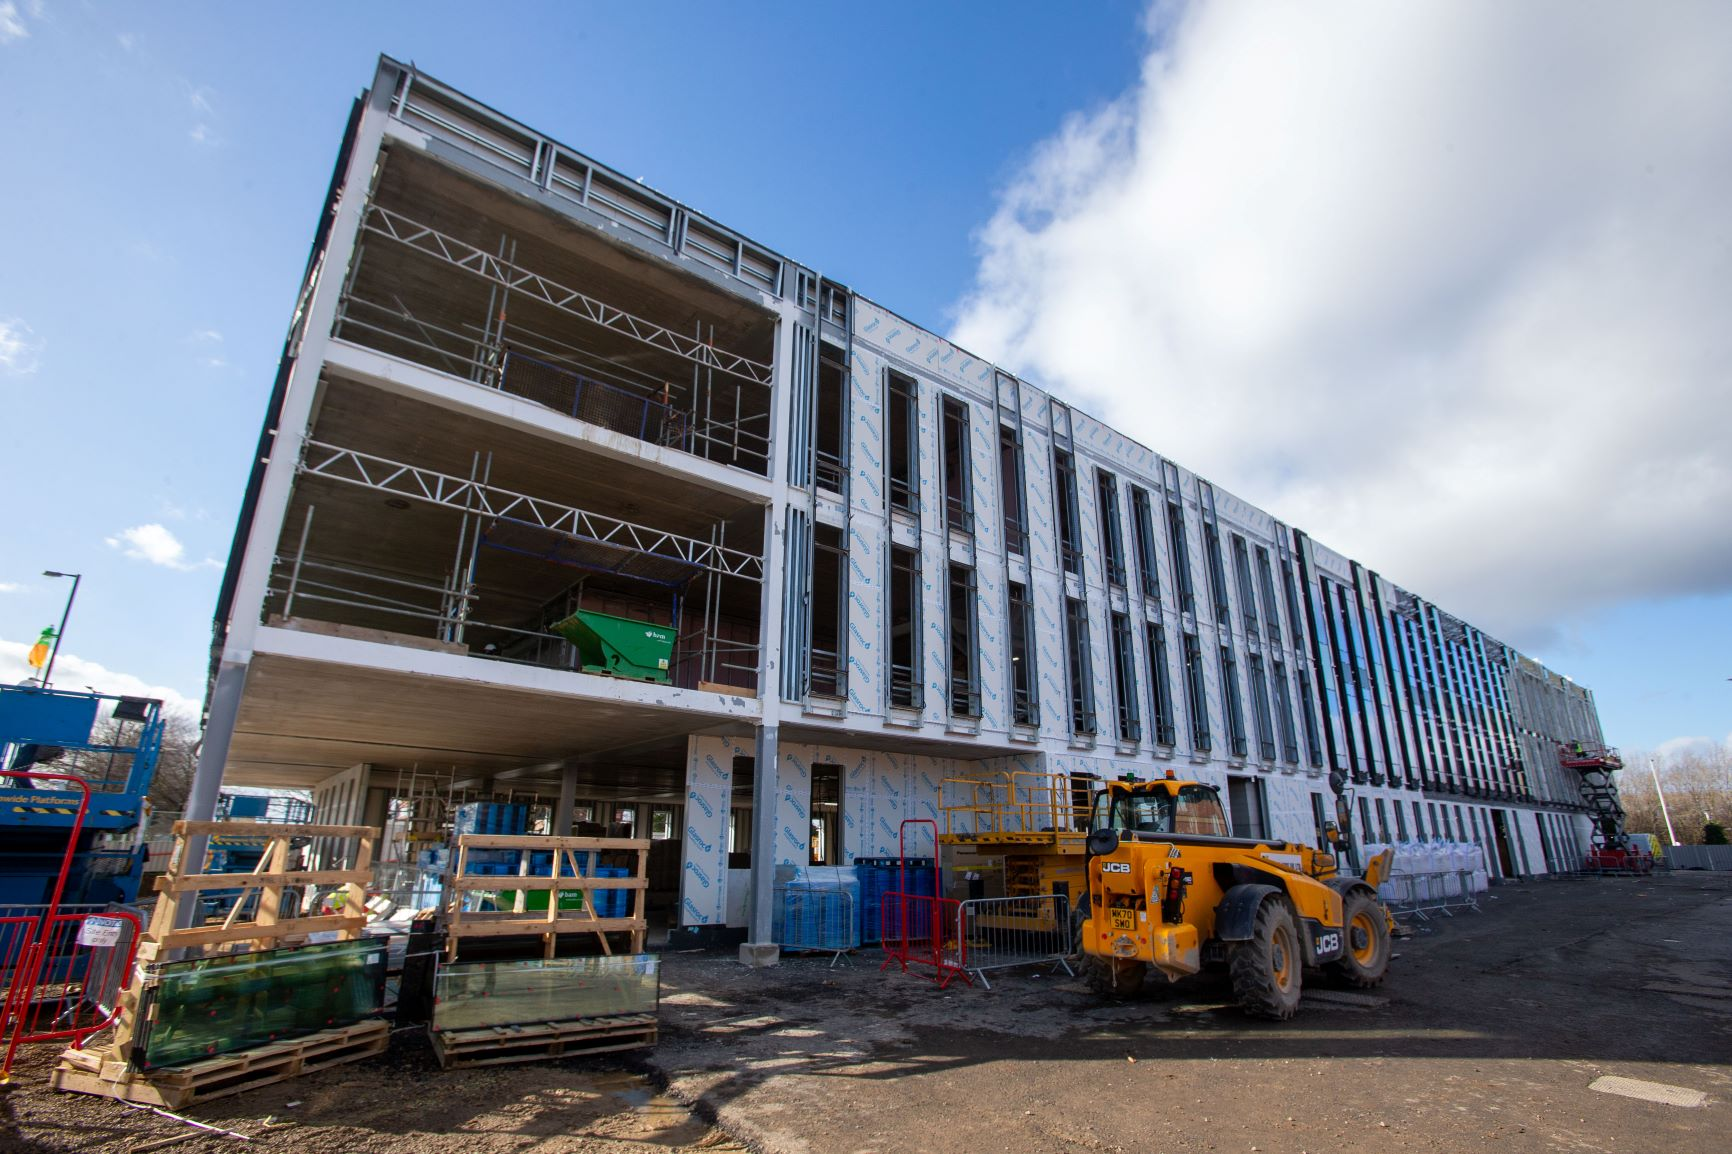 New campus building in Middlesbrough Feb 2021